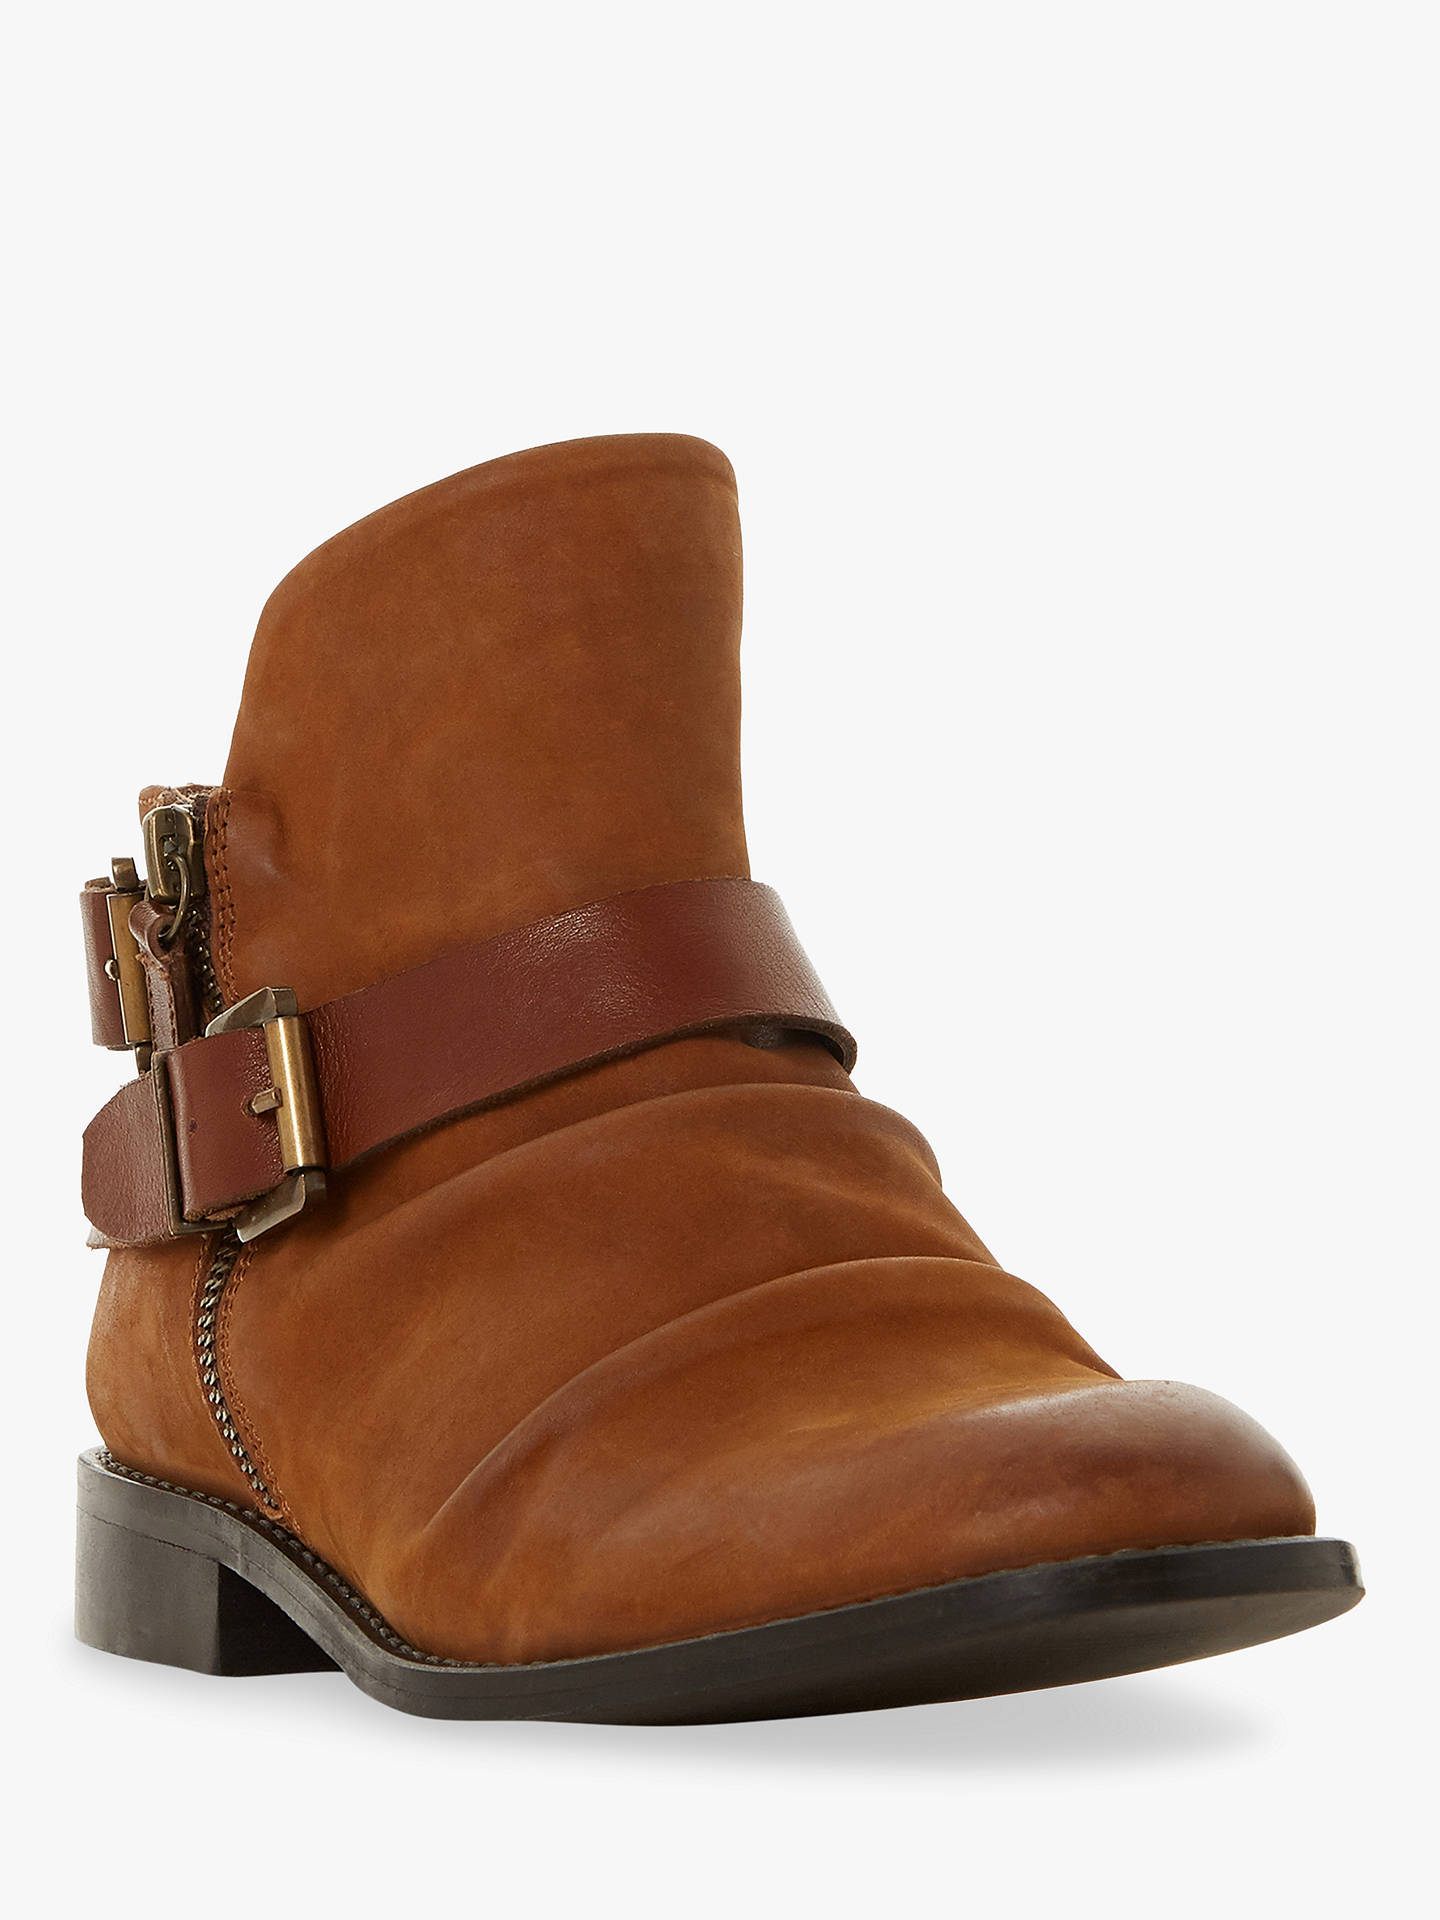 BuyBertie Ported Nubuck Buckle Detail Ankle Boots, Tan, 4 Online at johnlewis.com